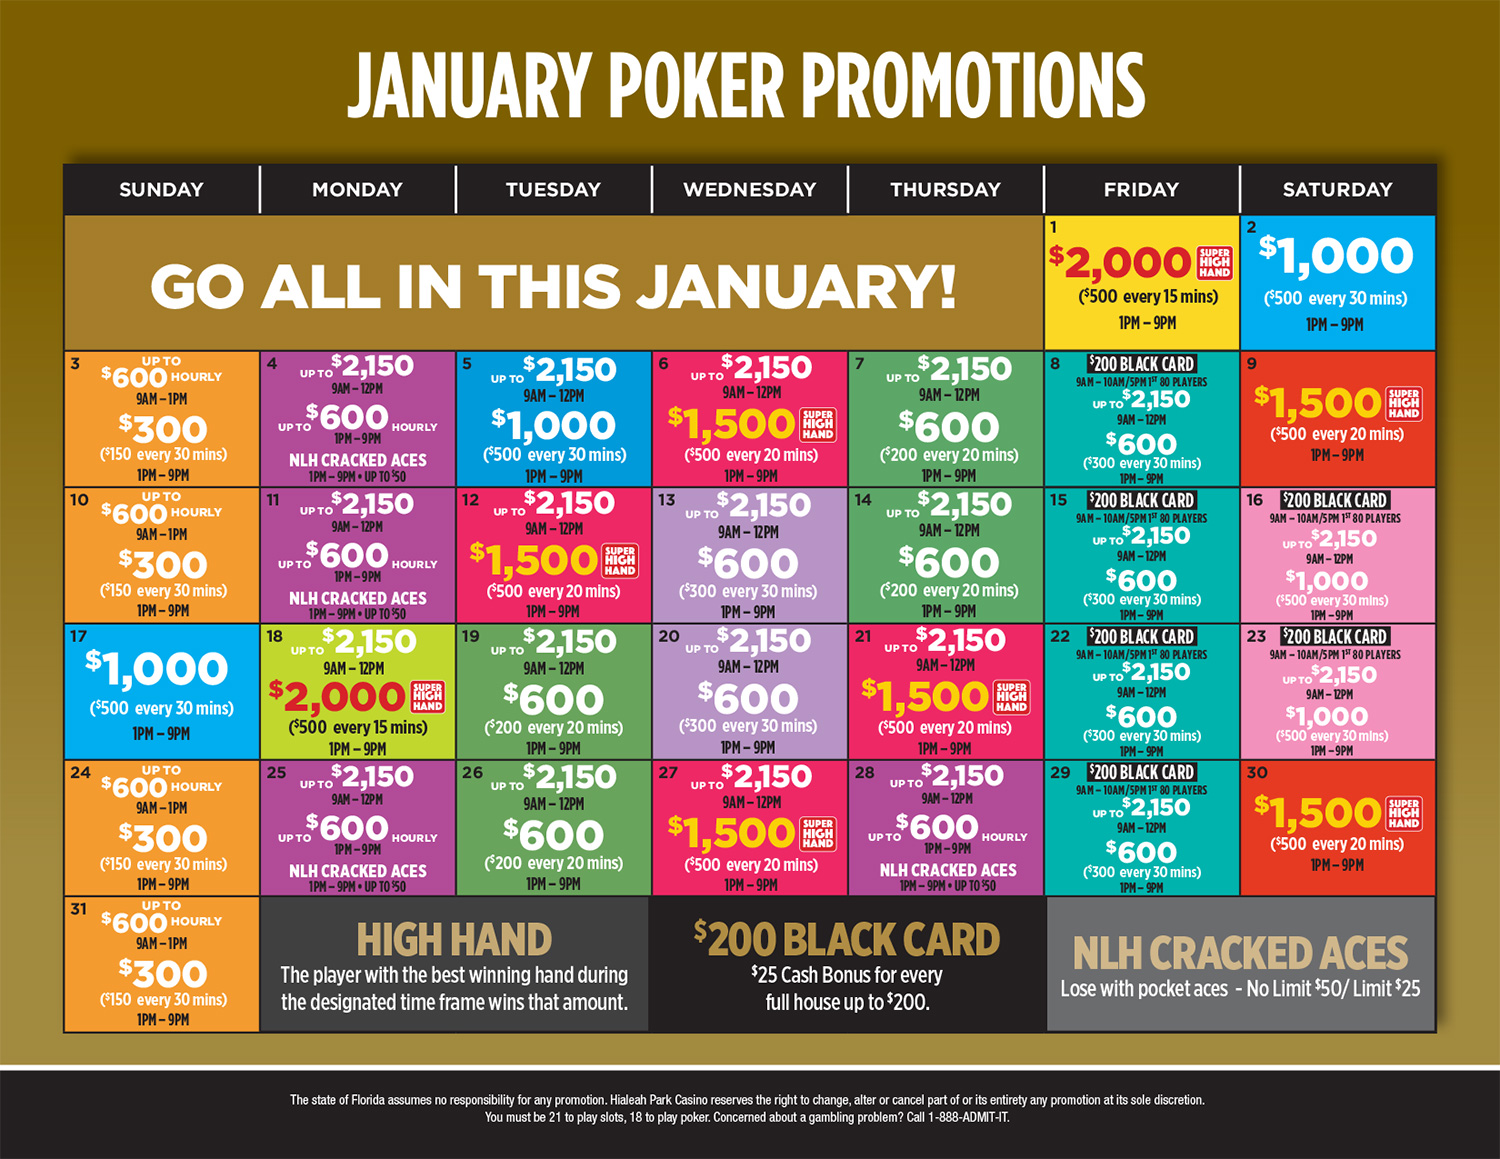 January Poker Promotions